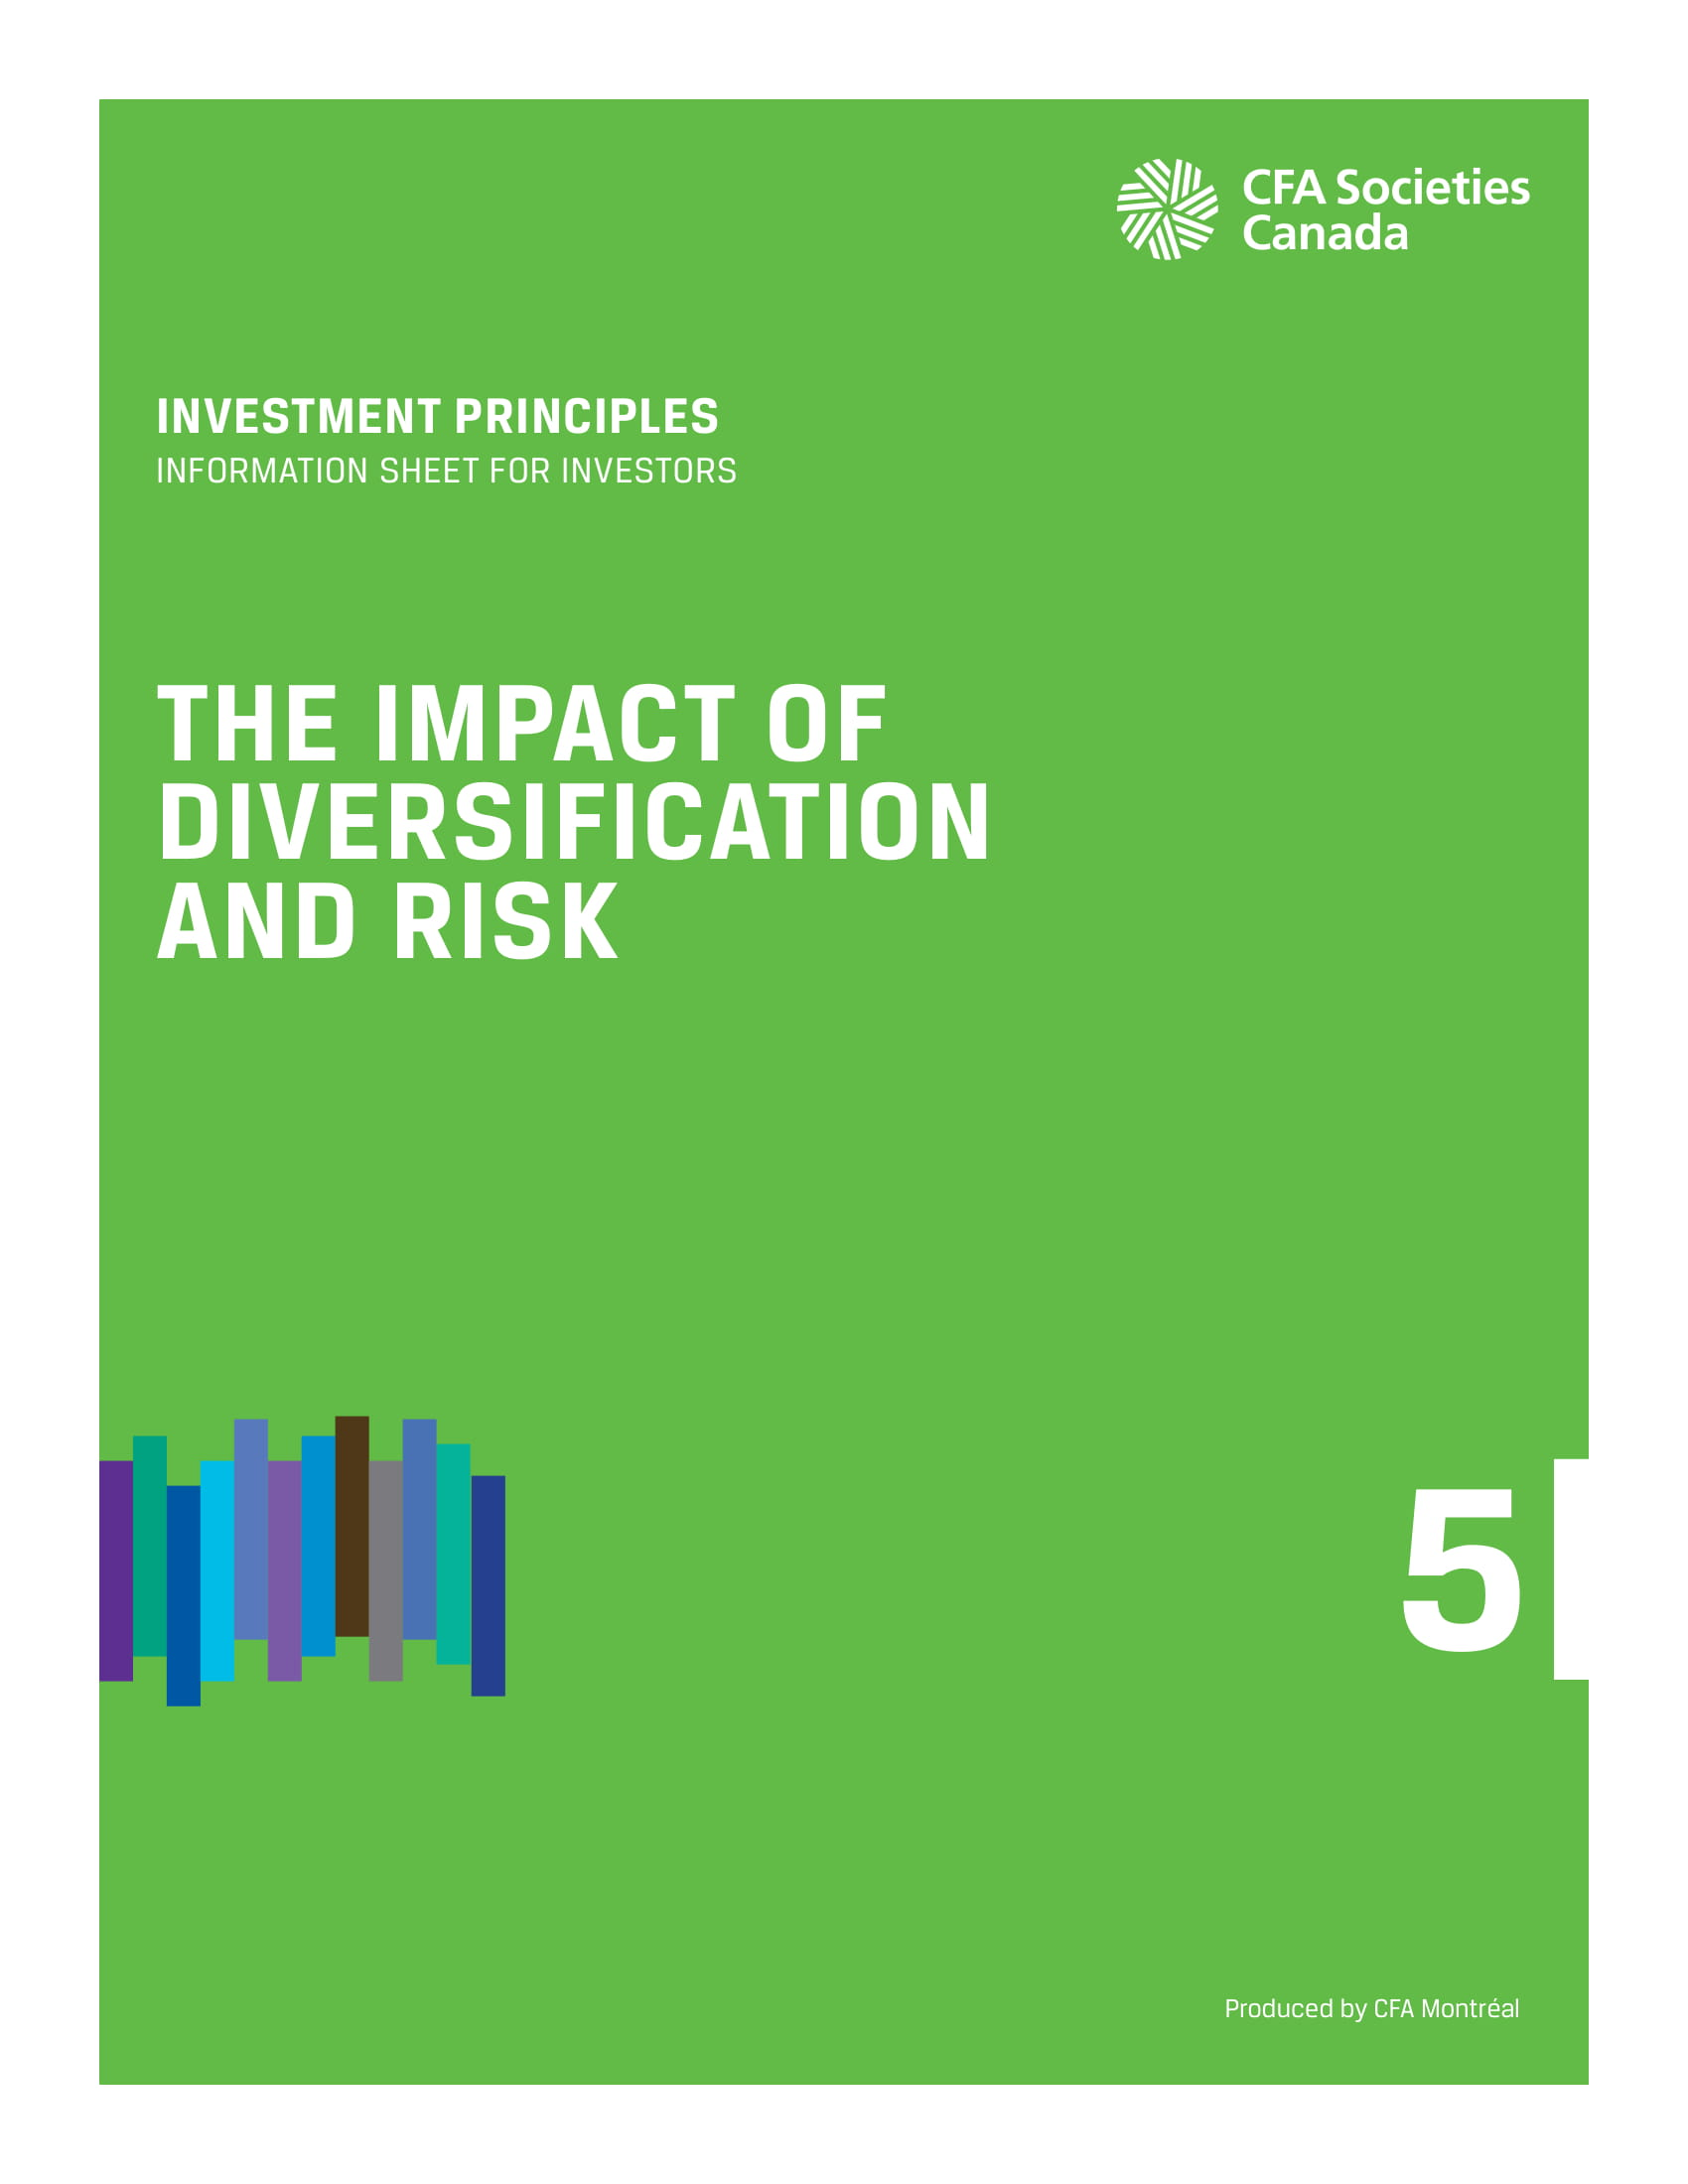 5. Investors - The Impact of Diversification and Risk_p1-1-1.jpg